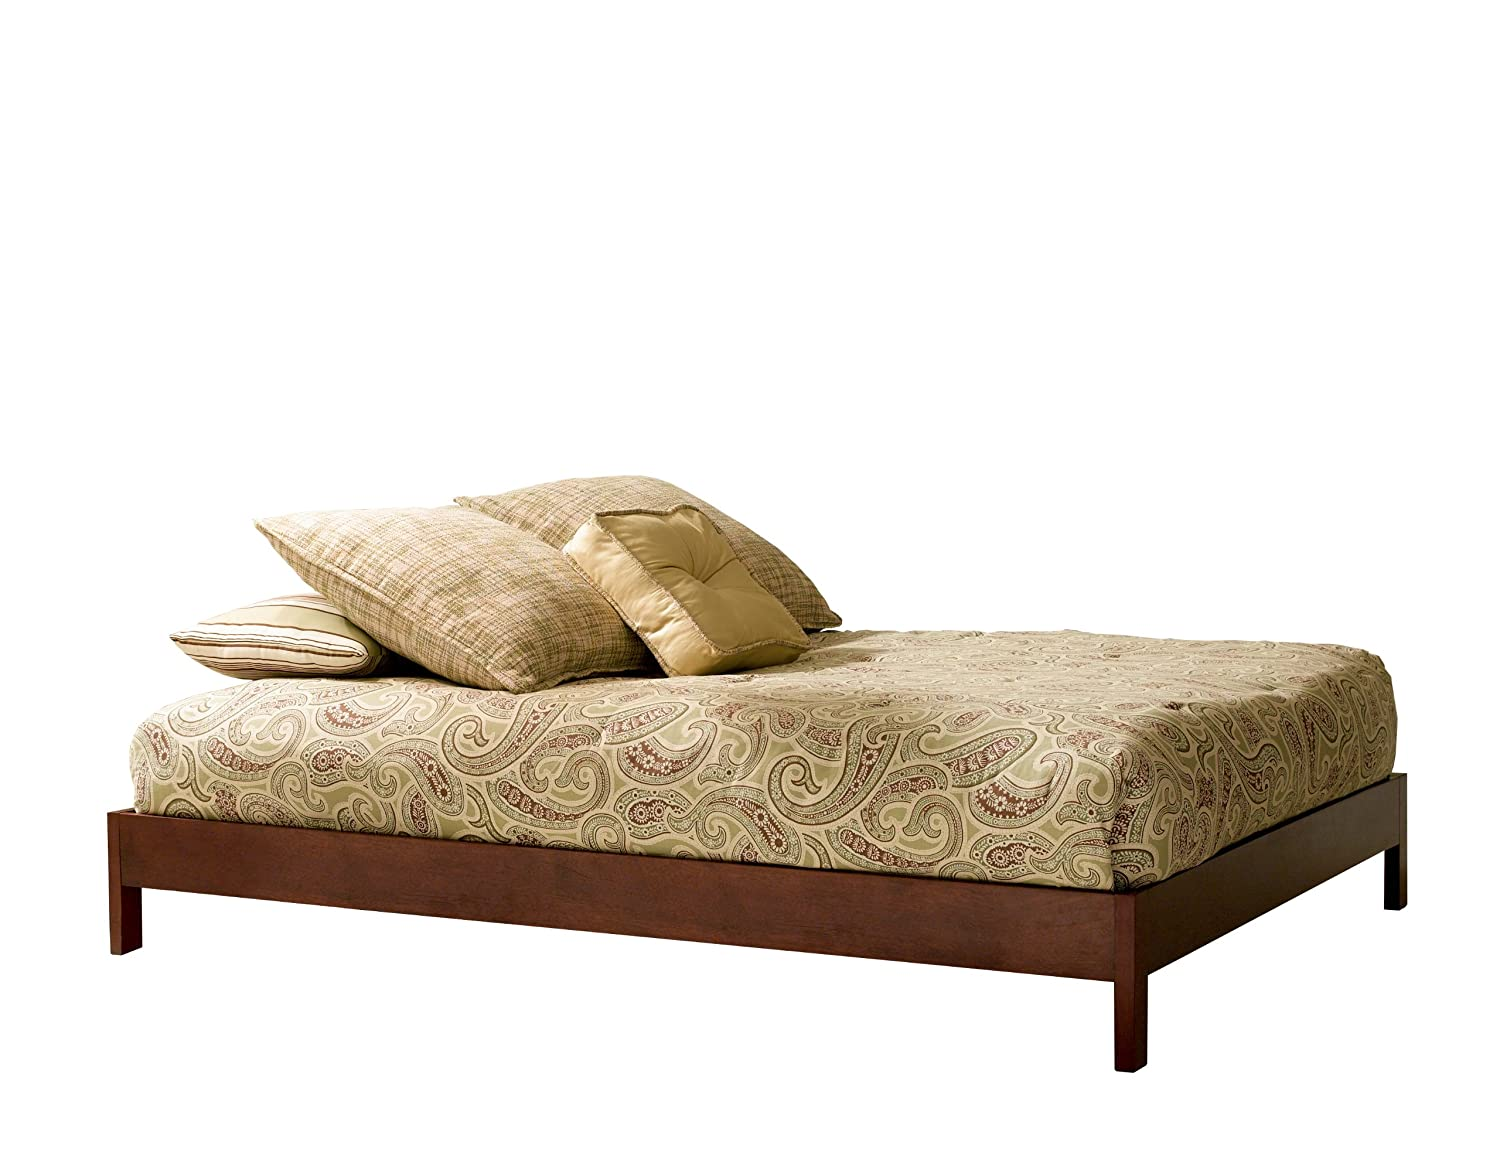 amazoncom murray platform bed with wooden box frame mahogany finish full kitchen dining